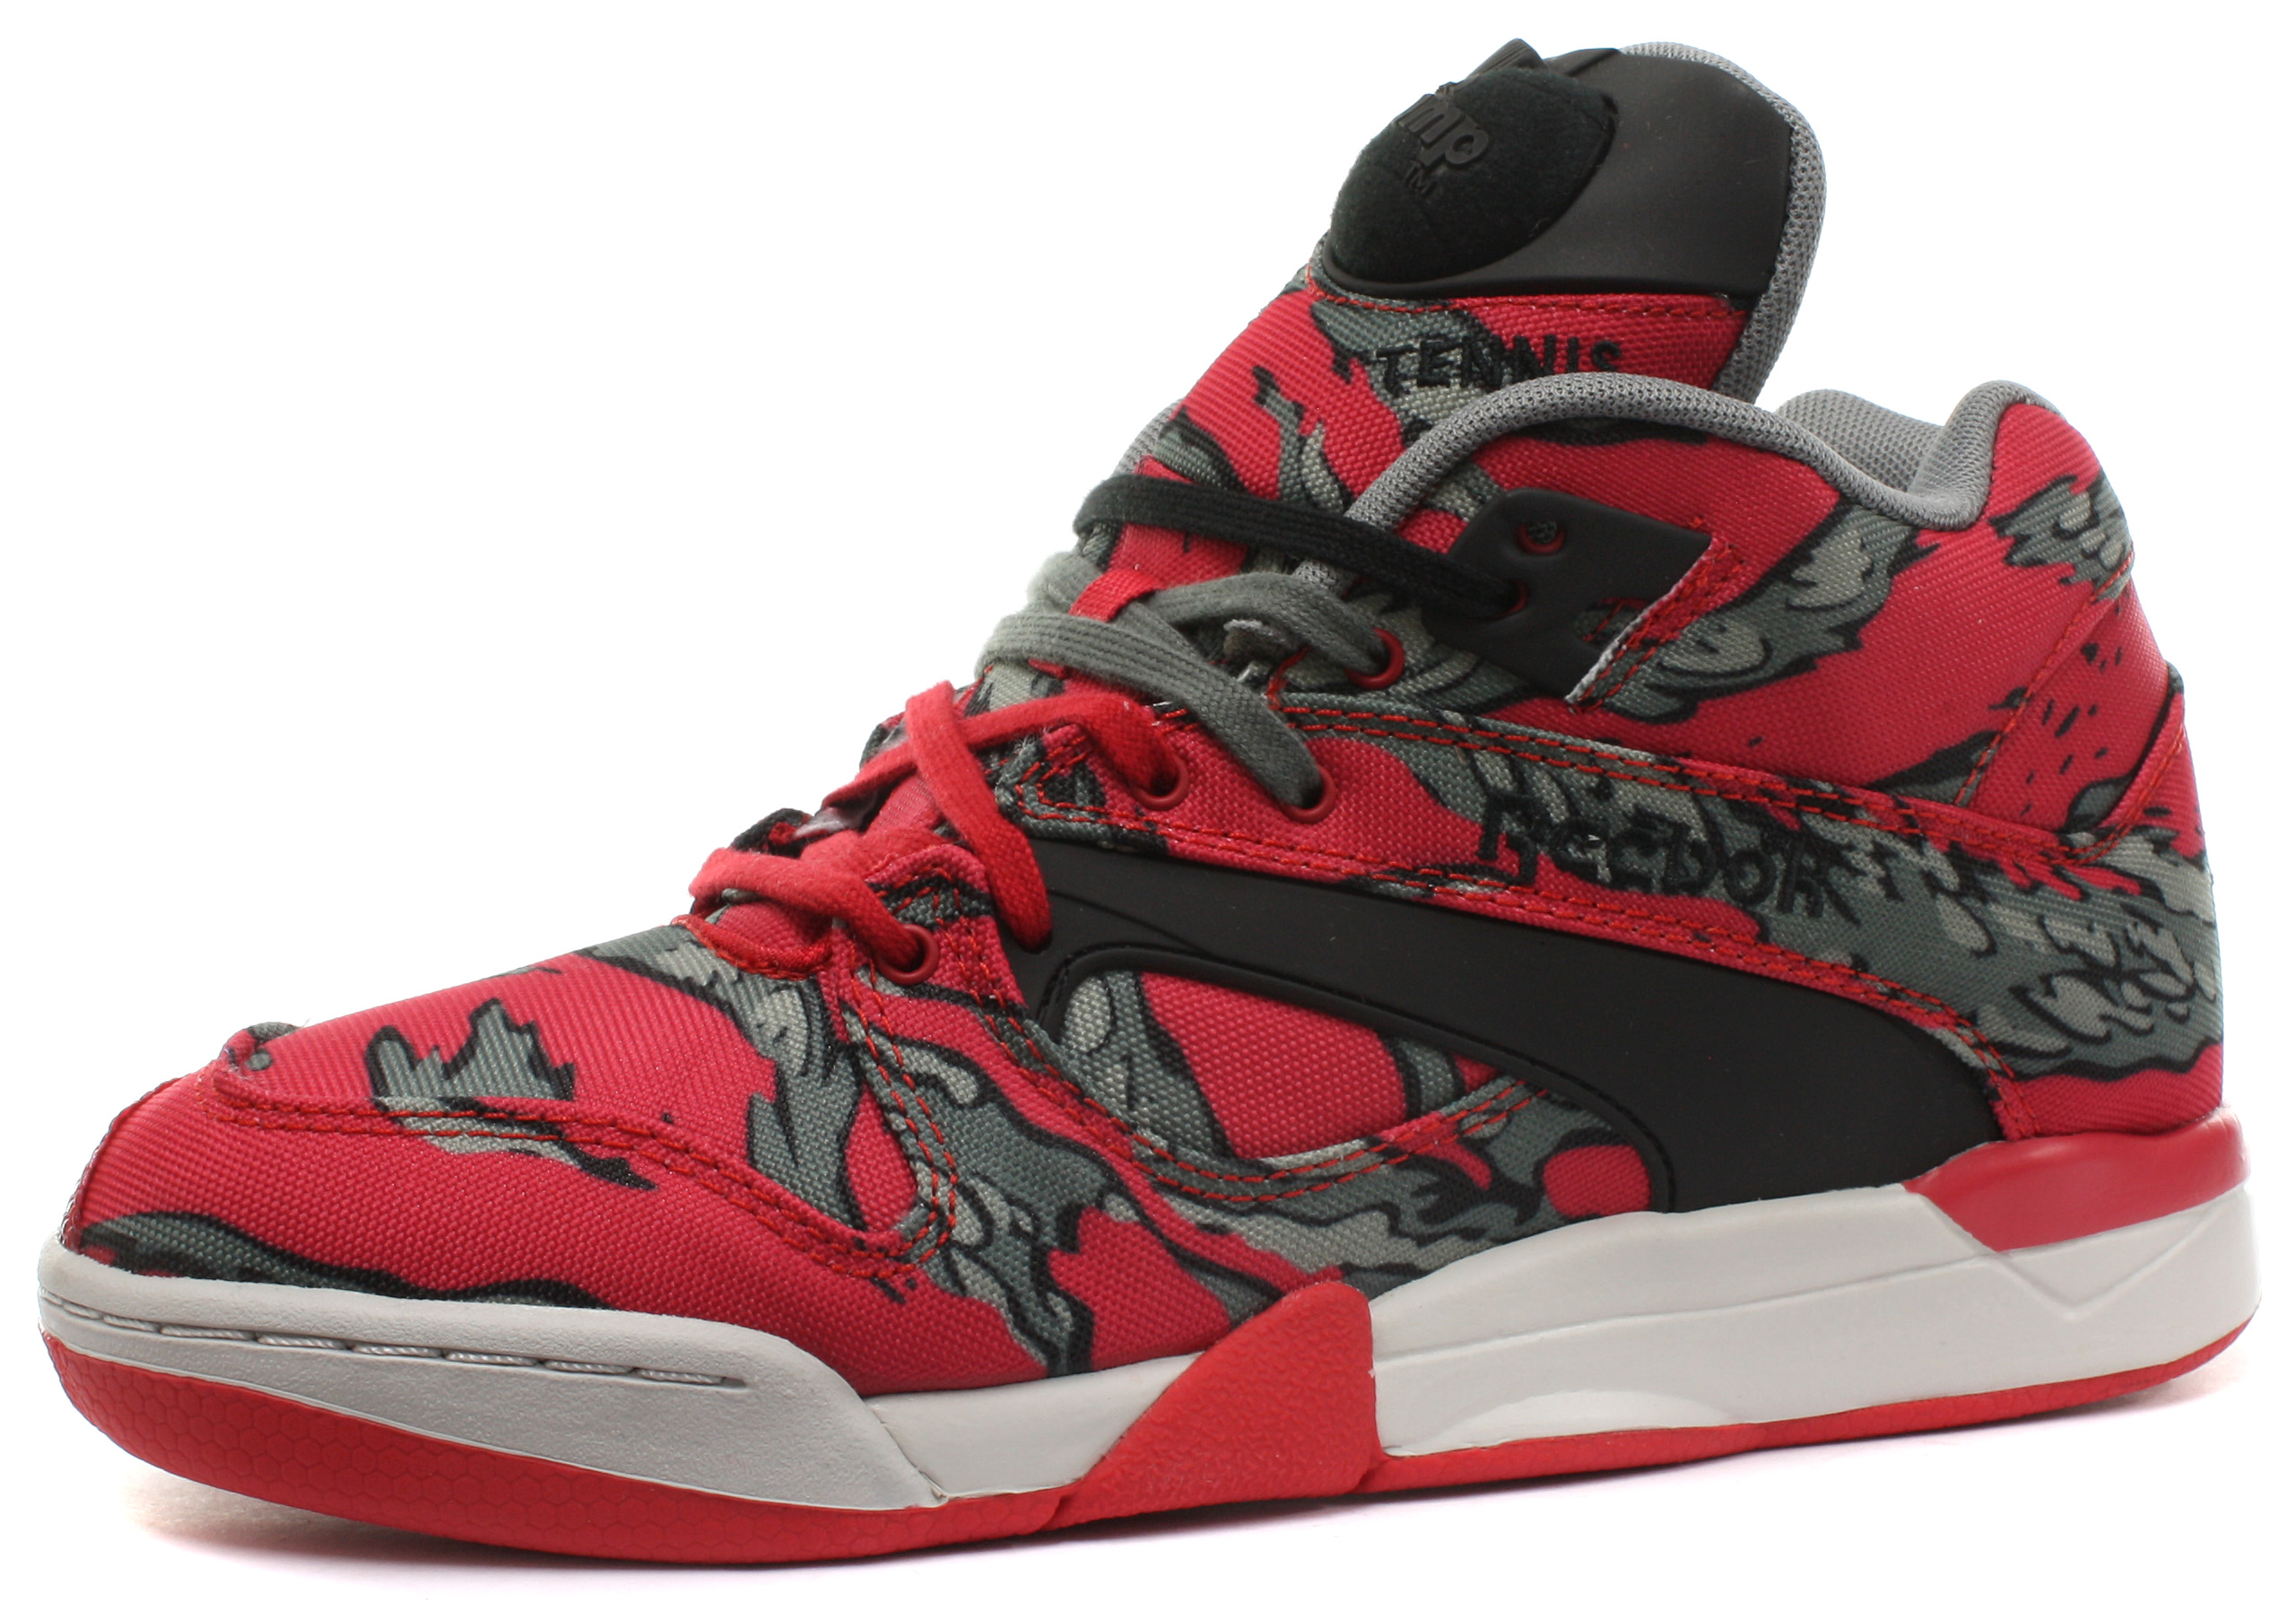 New Reebok Classic Court Victory Pump Red Unisex Trainers ALL SIZES ... dc8390330c46